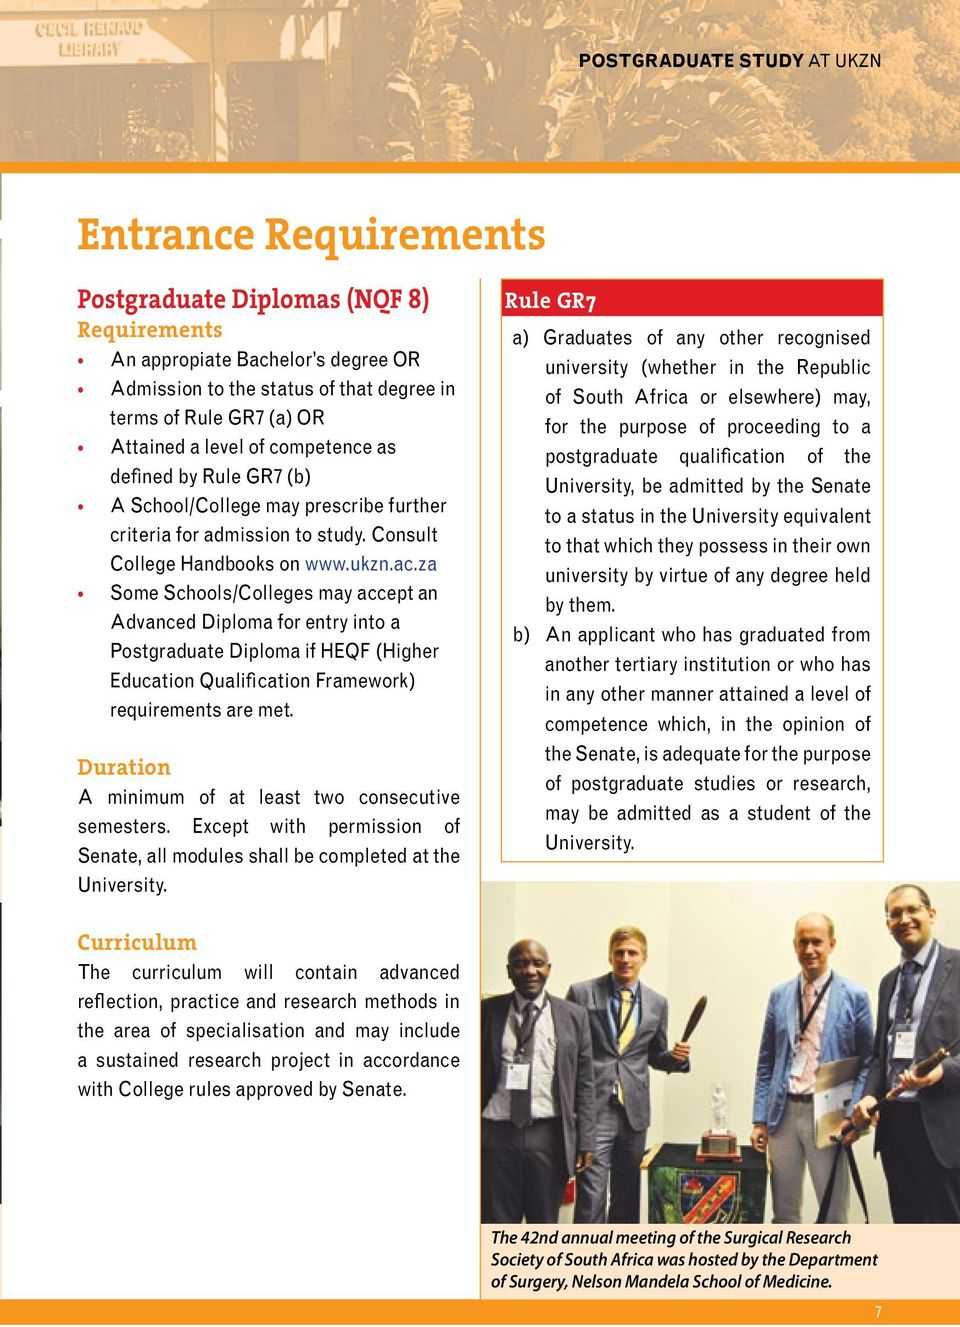 za Some Schools/Colleges may accept an Advanced Diploma for entry into a Postgraduate Diploma if HEQF (Higher Education Qualification Framework) requirements are met.